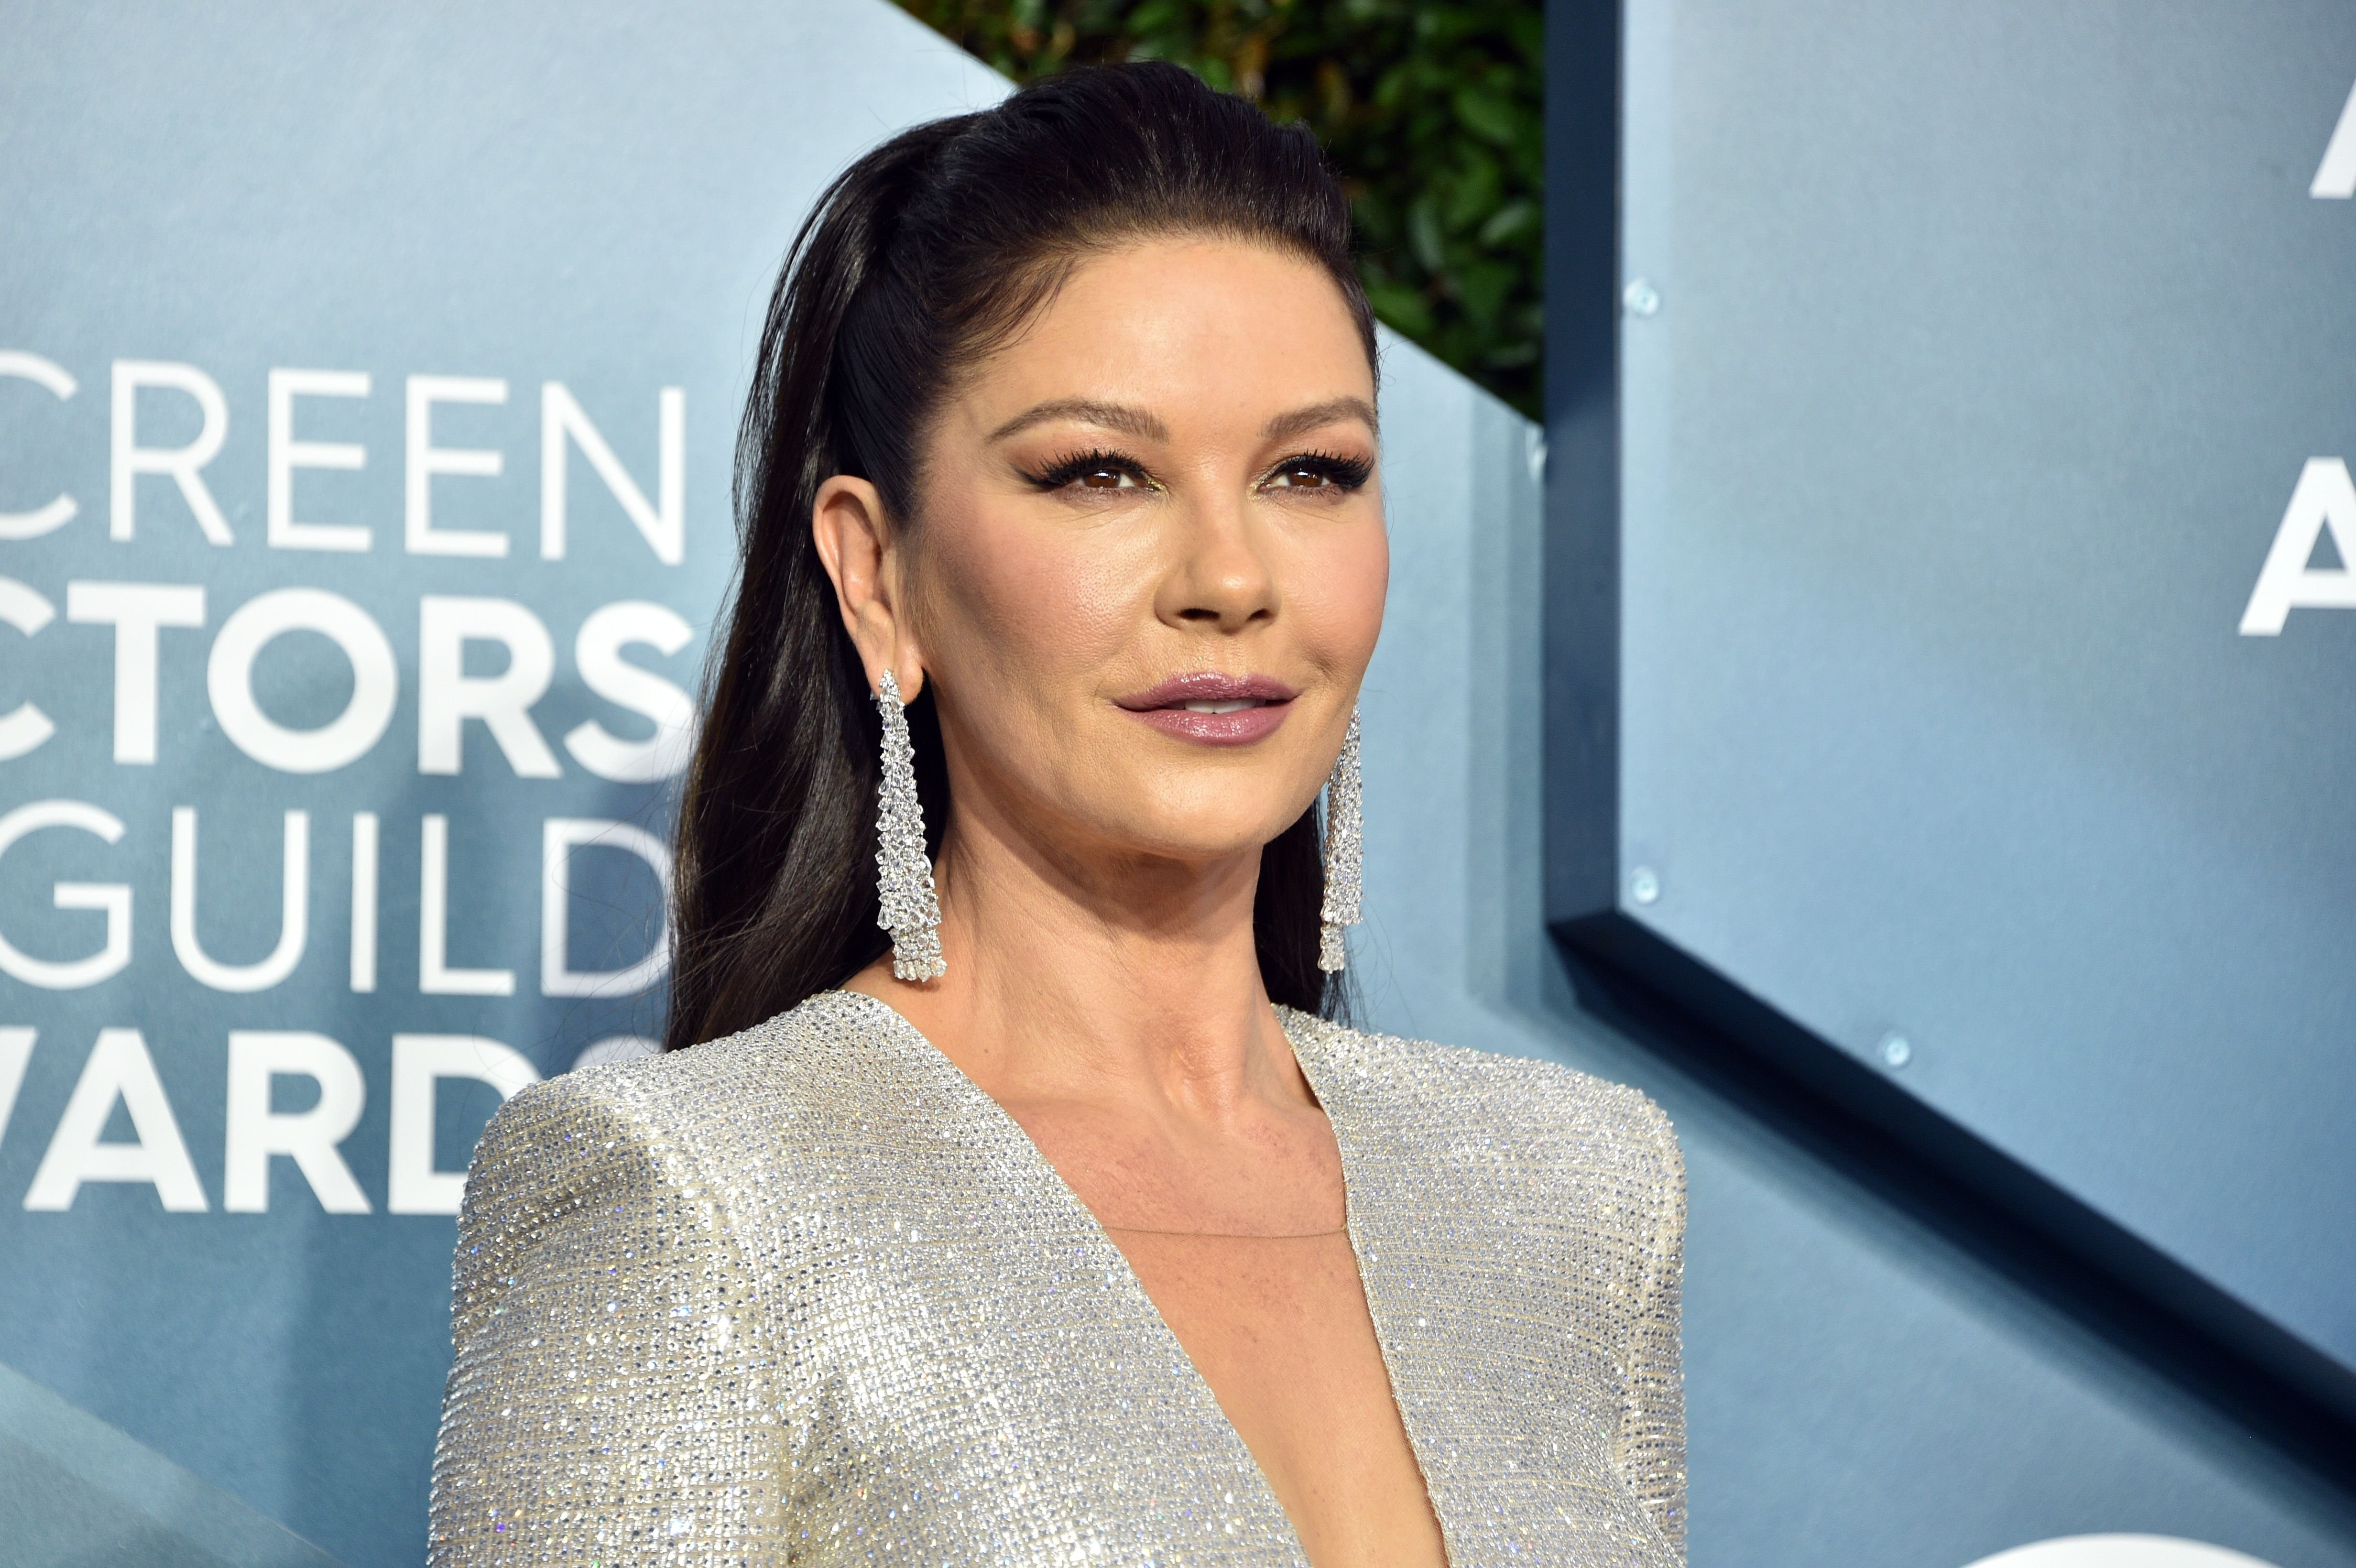 Catherine Zeta-Jones at the 26th Annual Screen ActorsGuild Awards at The Shrine Auditorium on January 19, 2020. | Photo: Getty Images